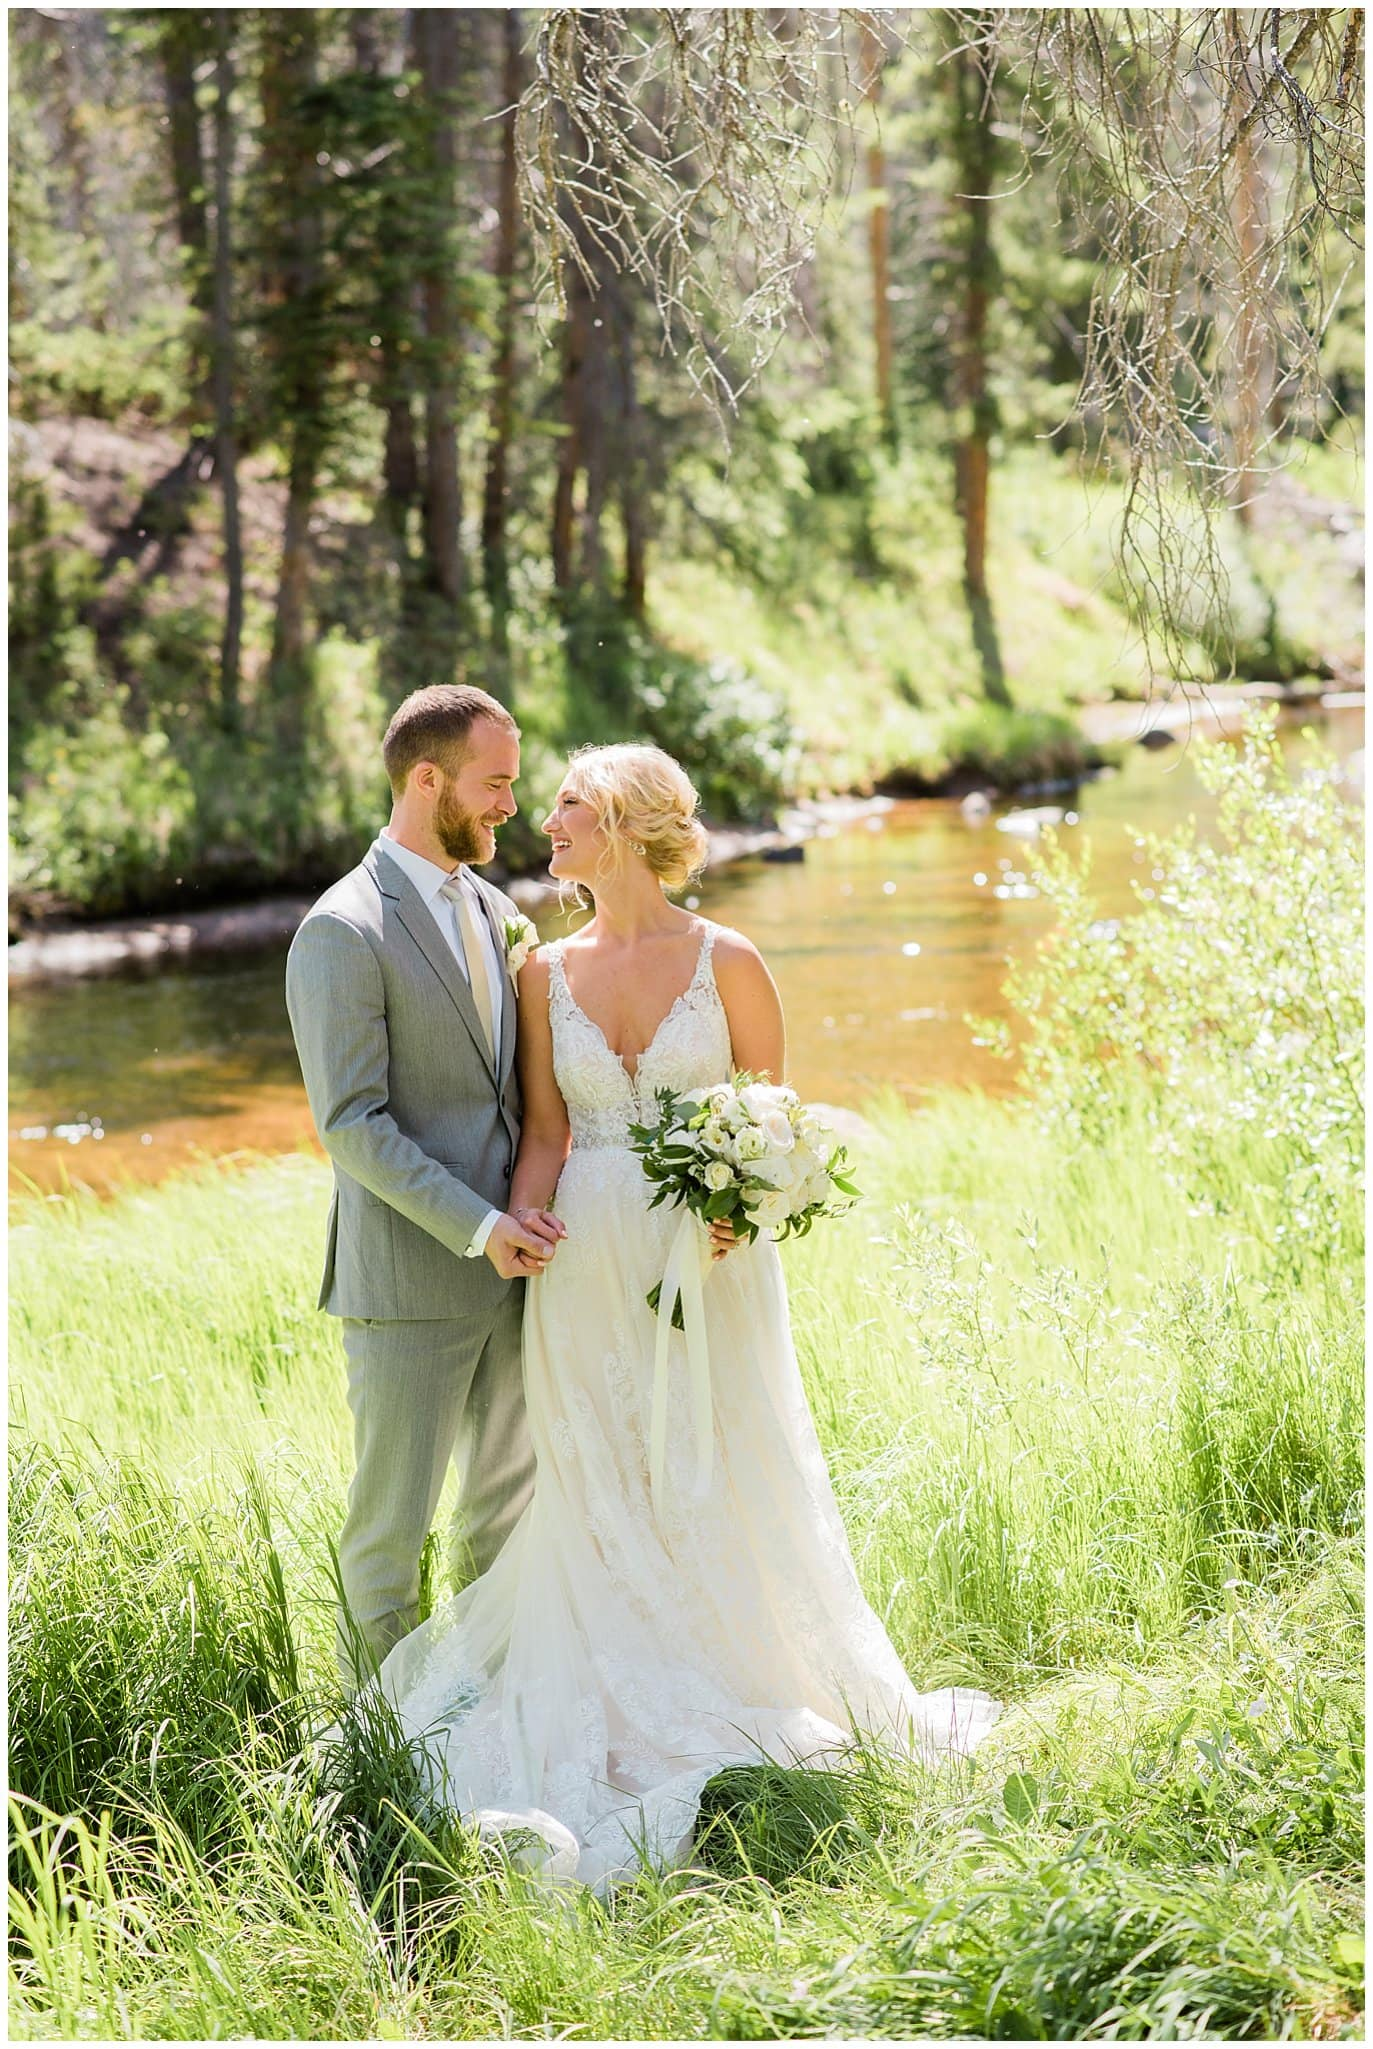 first look by river at at Summer Piney River Ranch wedding by Vail wedding photographer Jennie Crate, Photographer